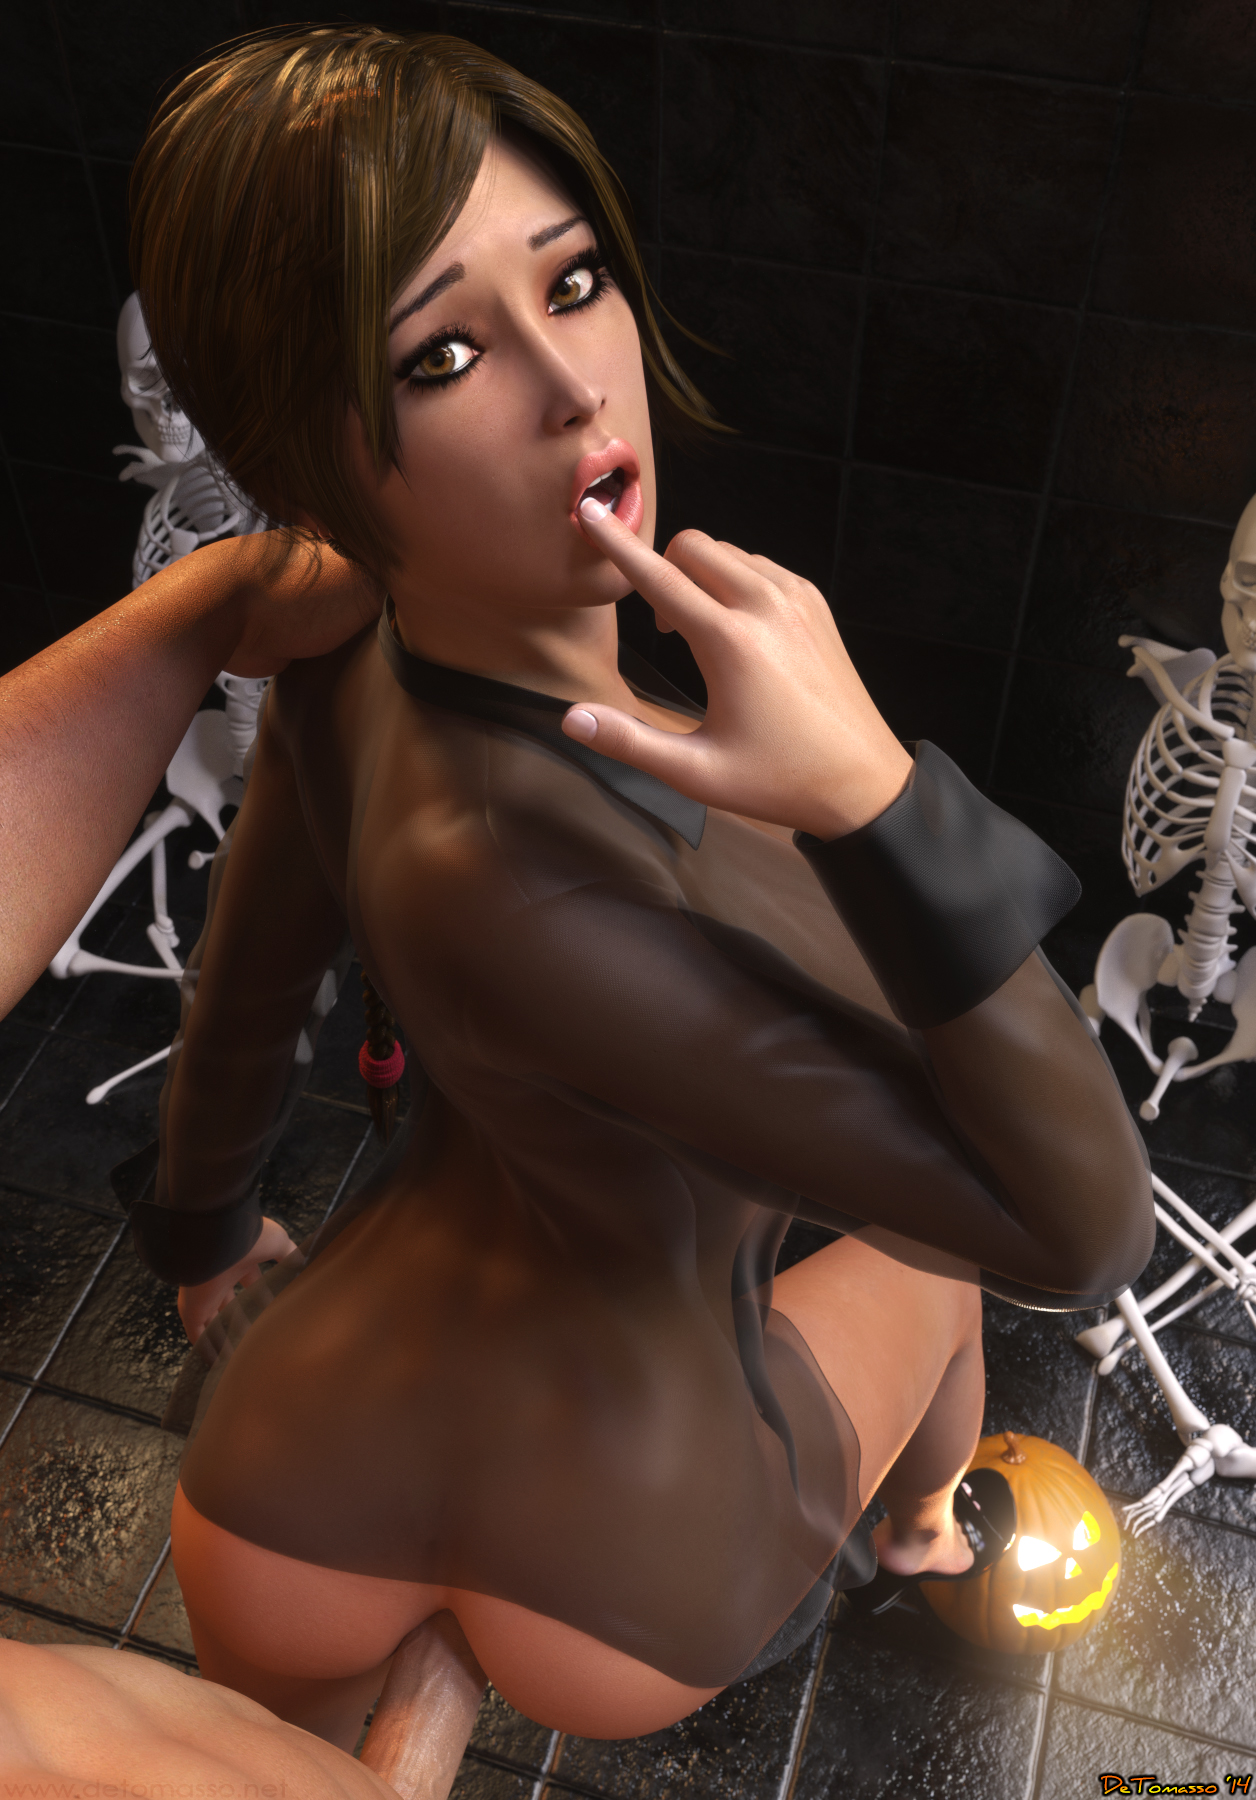 Lara croft porn3d cartoon gallery